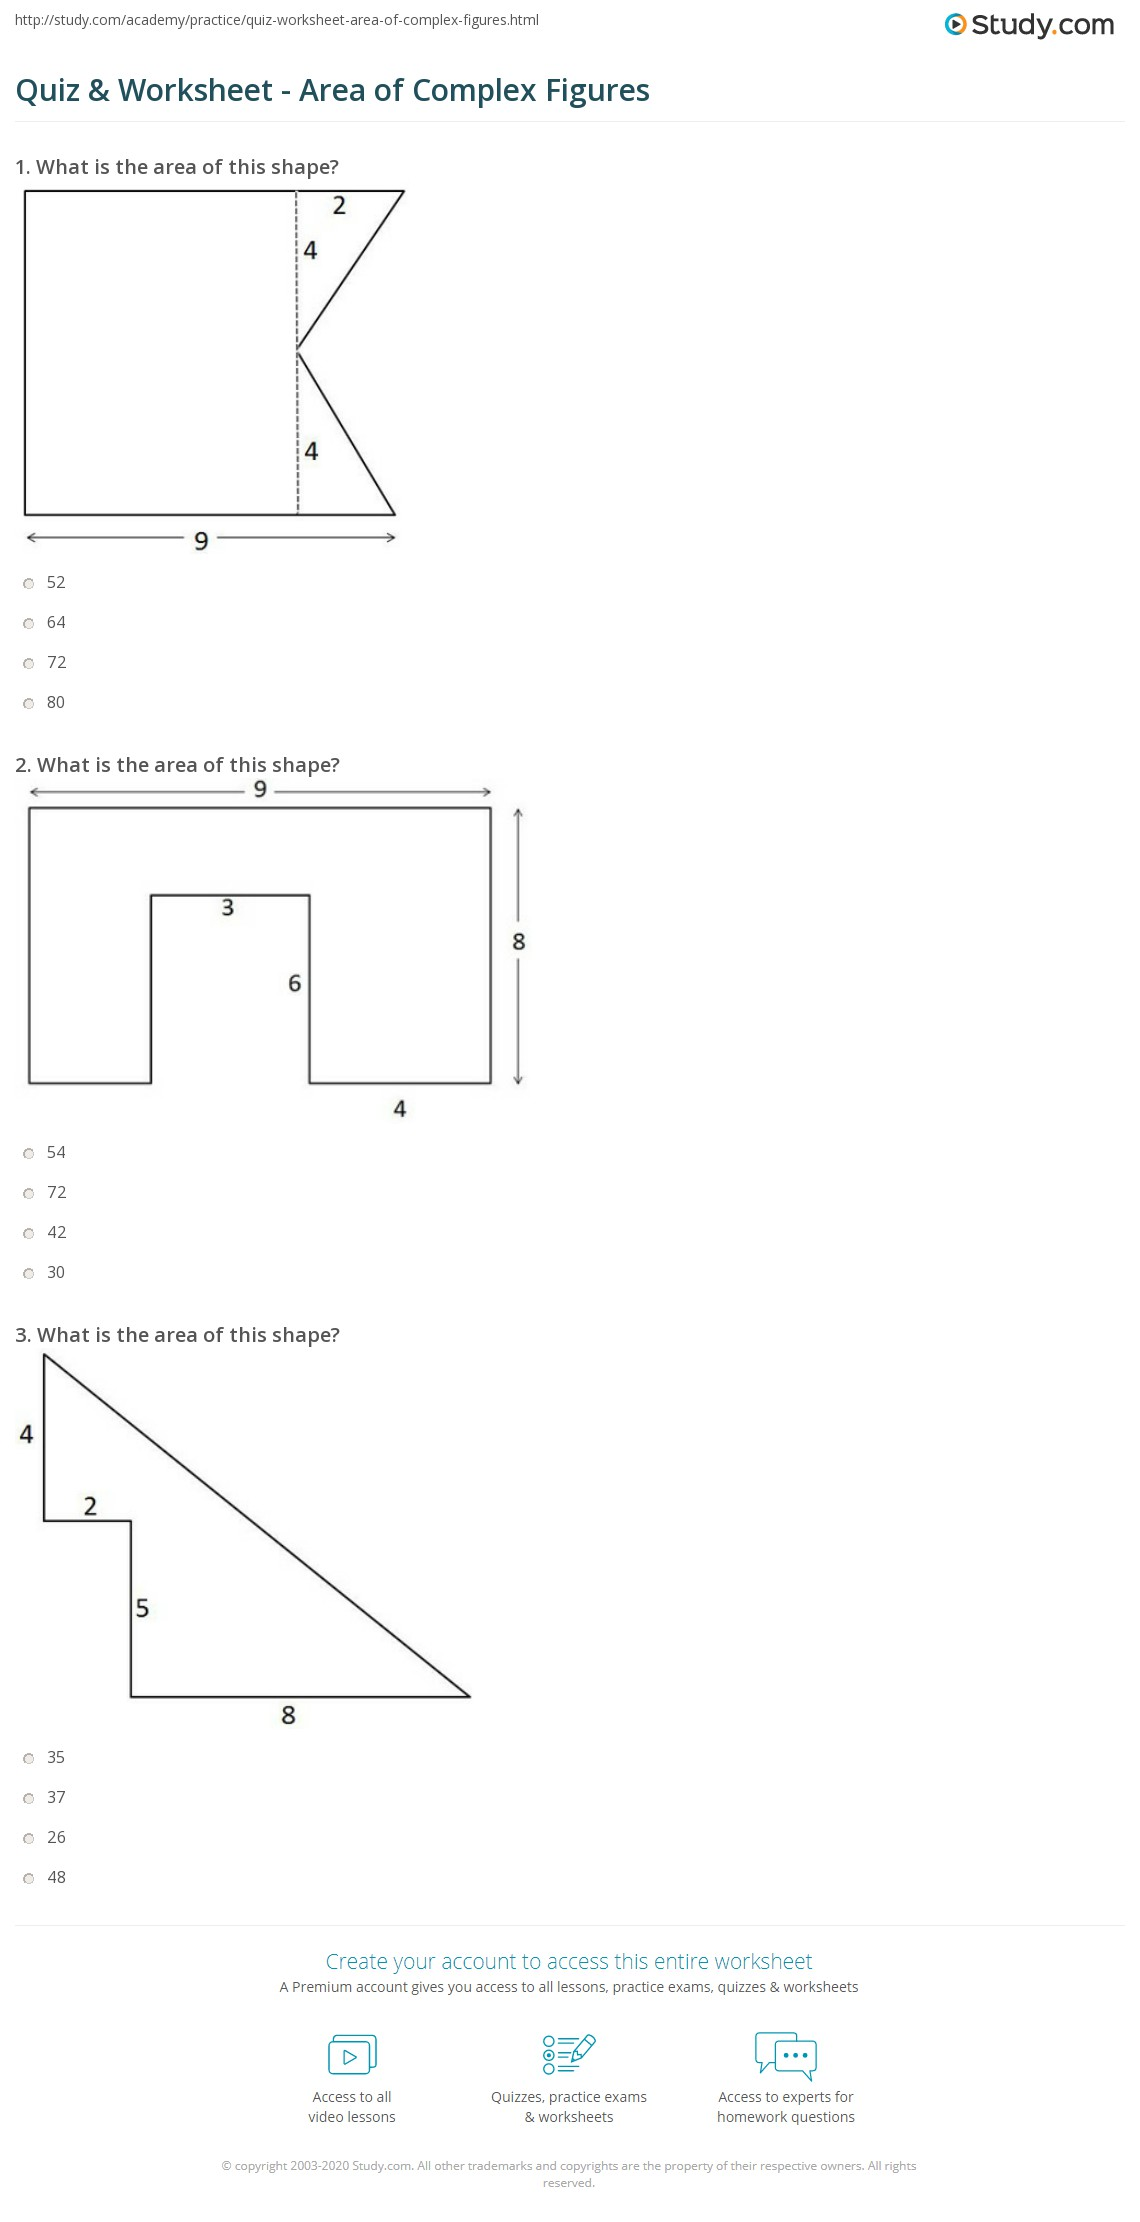 Quiz Worksheet Area of Complex Figures – Area of Complex Figures Worksheet